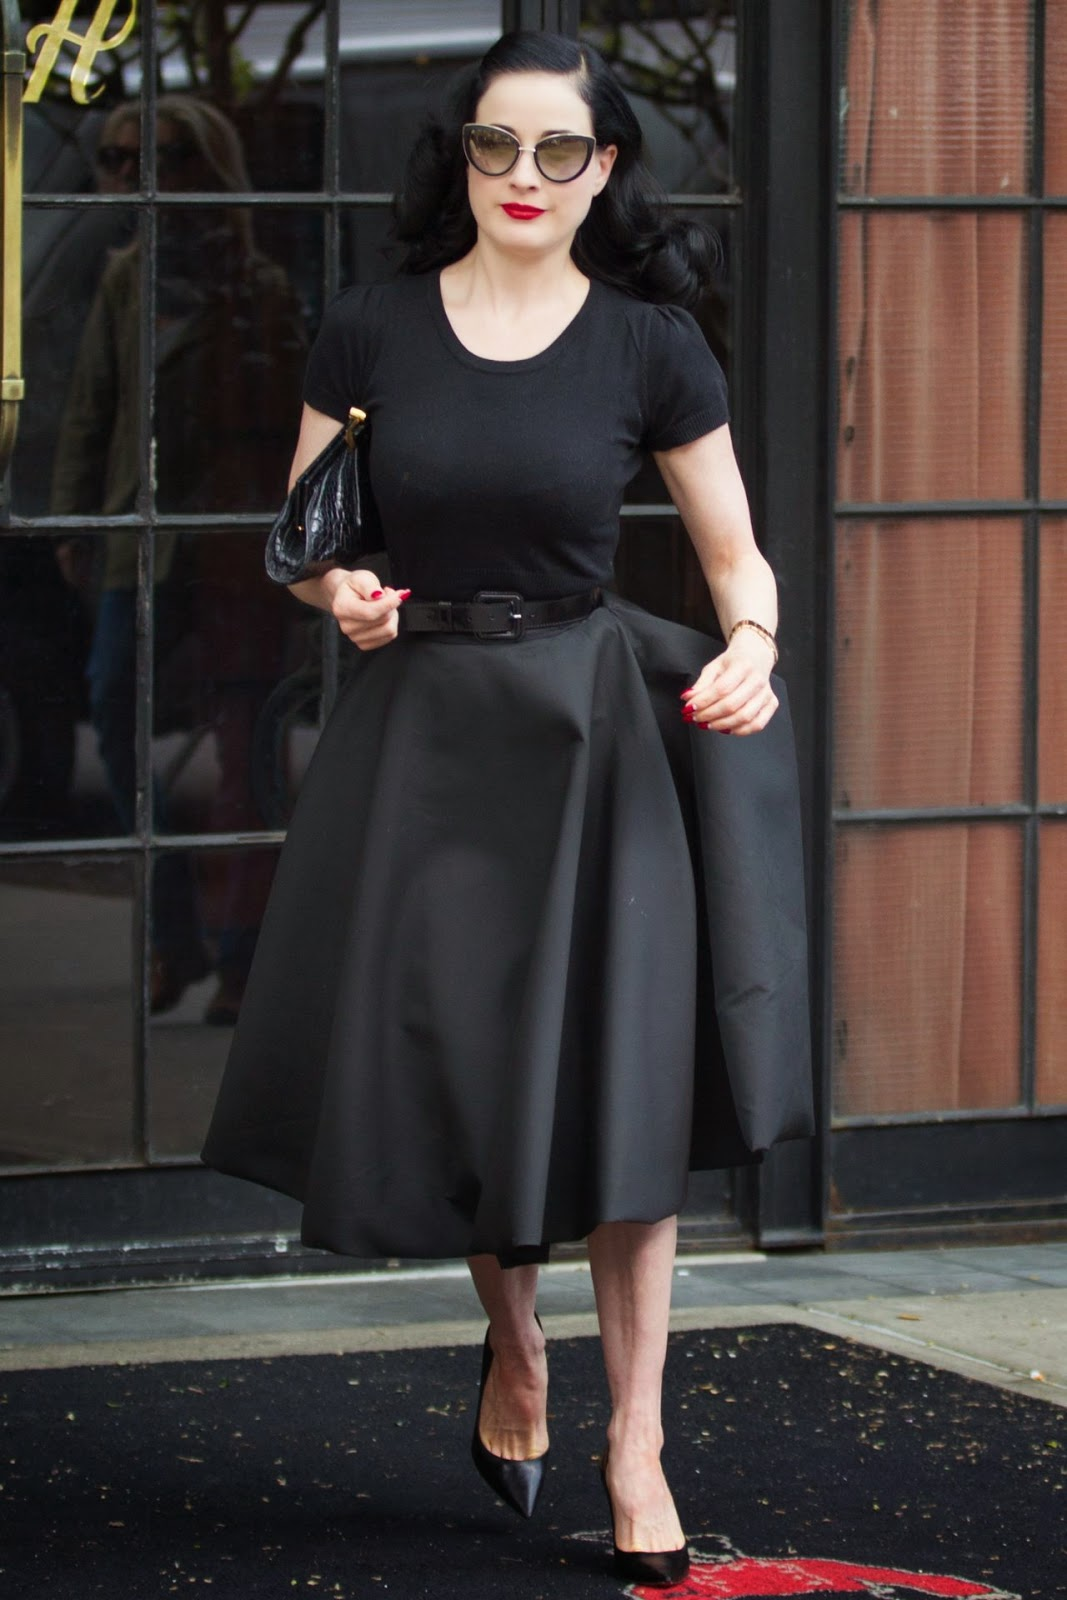 Dita Von Teese In An All Black Look Out And About In Ny